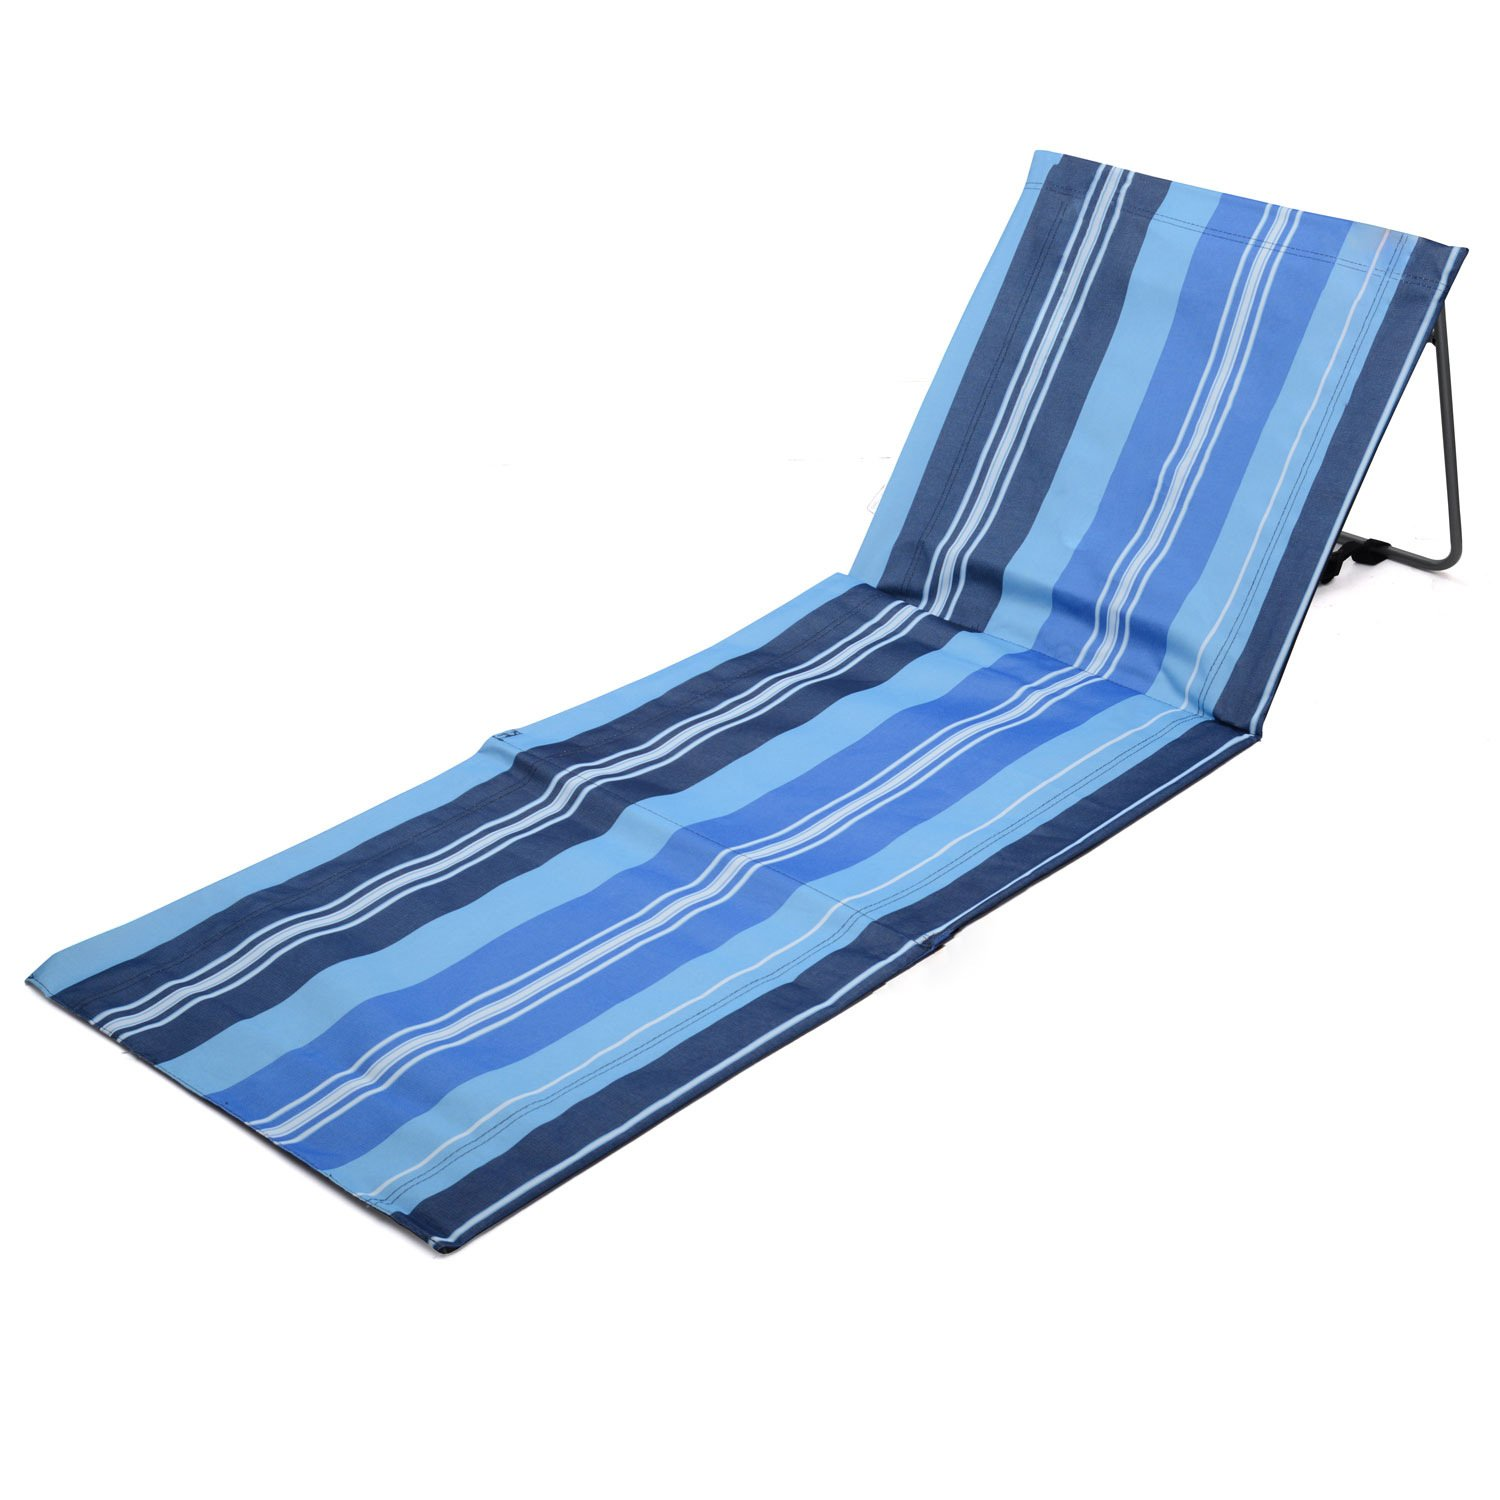 tommy bahama beach chair uk lightweight top 10 best chairs and umbrellas